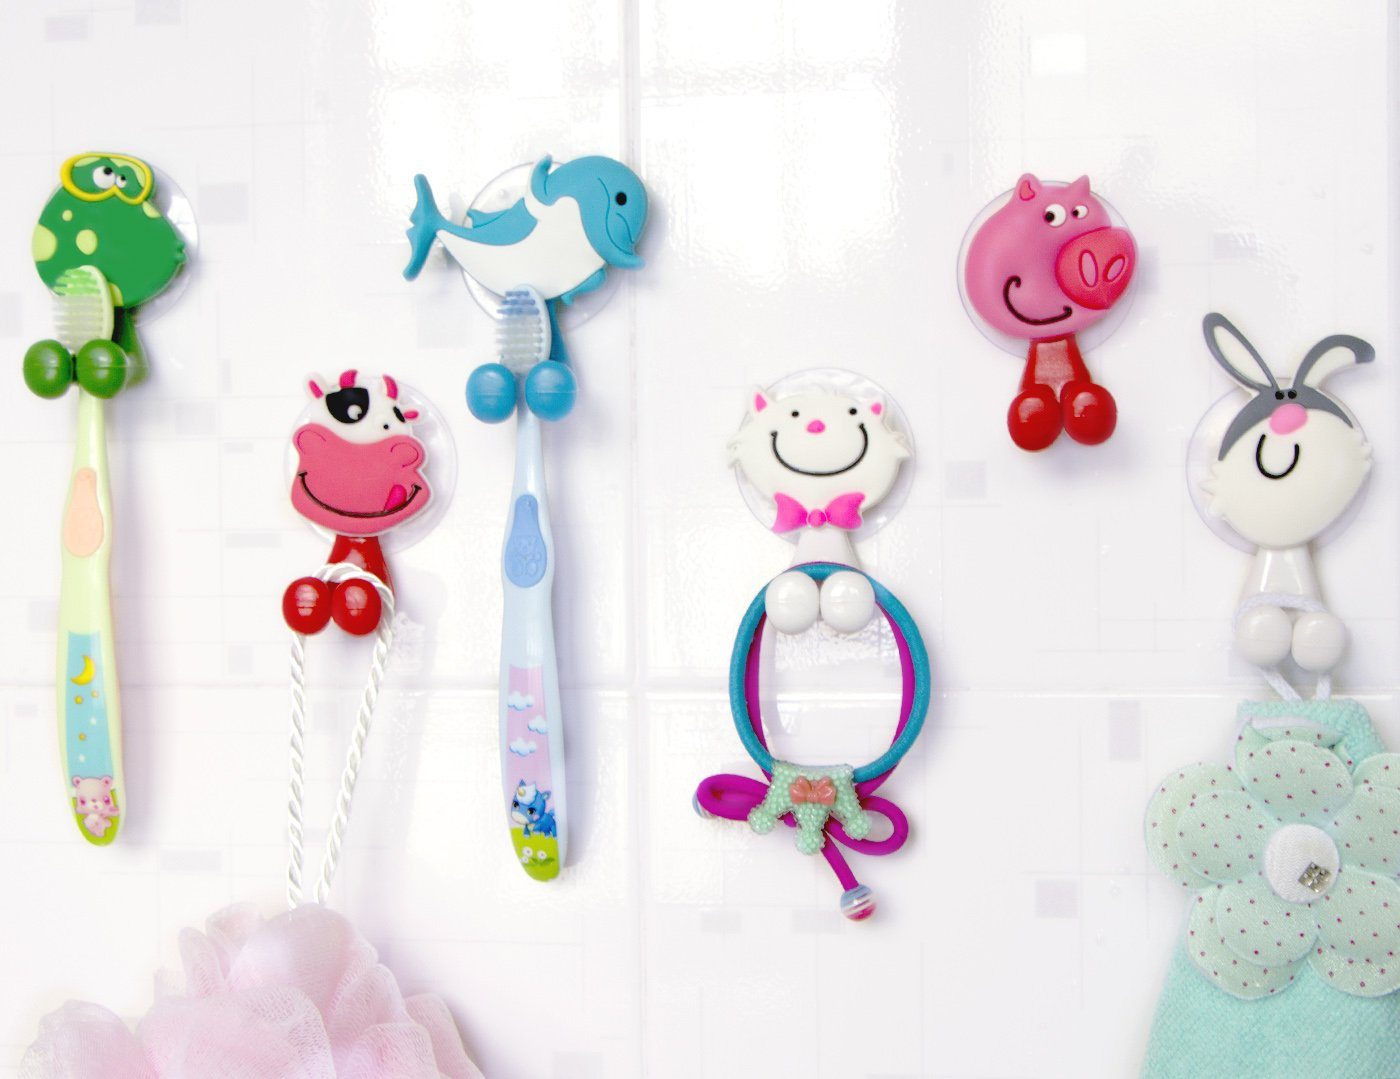 2 Pcs Toothbrush Holder Wall Mounted Suction Cup Cute Cartoon SRKCA